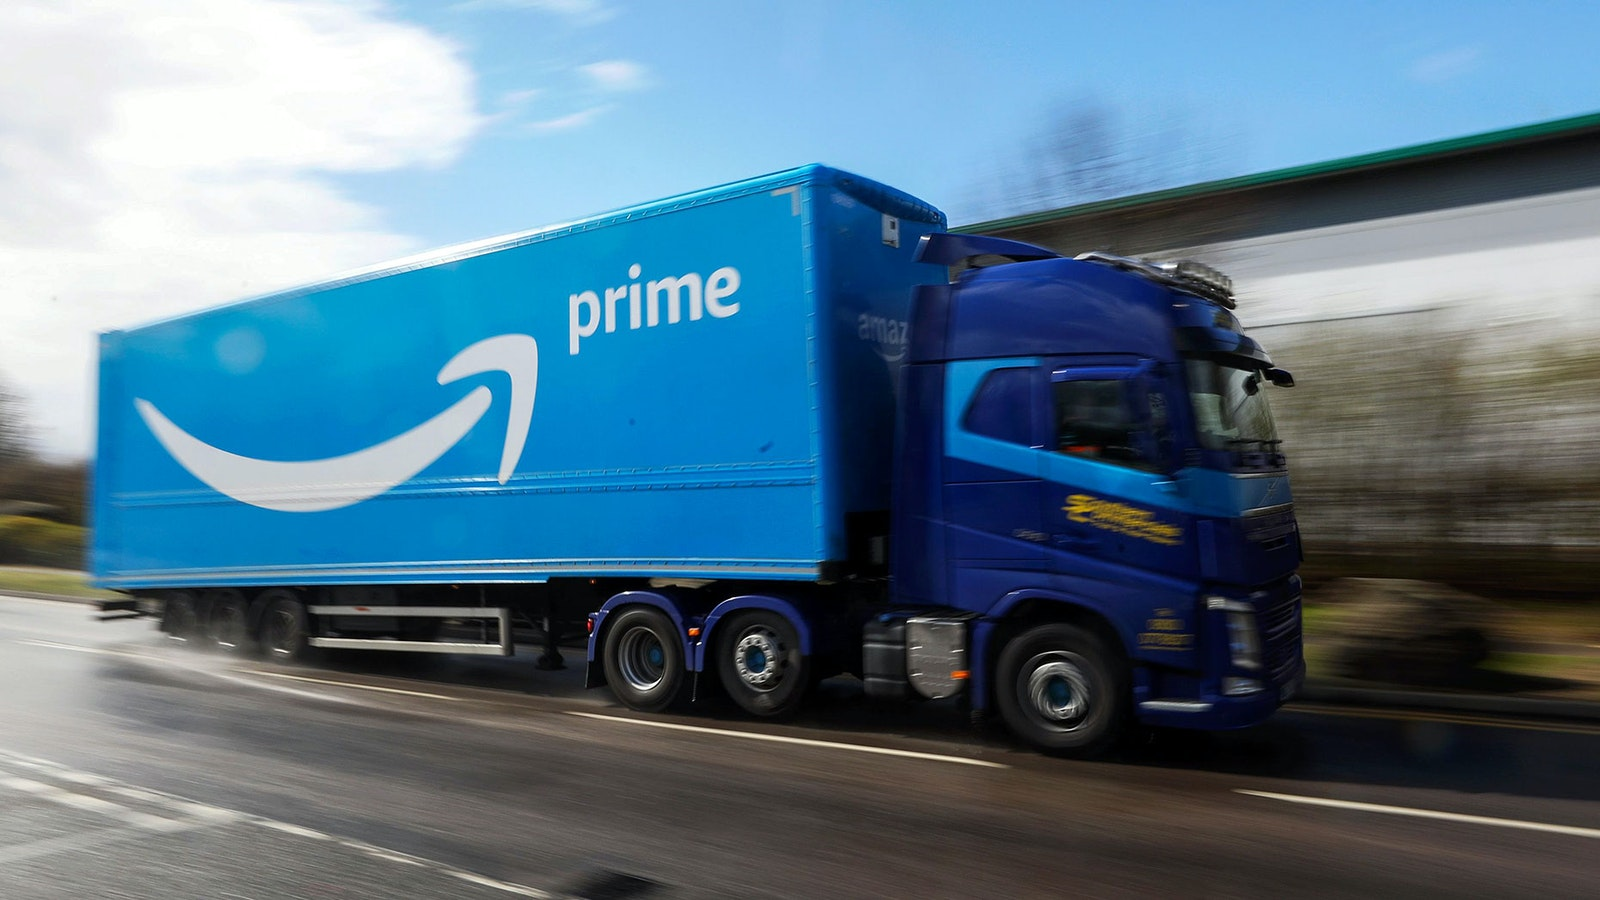 An Amazon Prime truck in the U.K. Photo by Bloomberg.